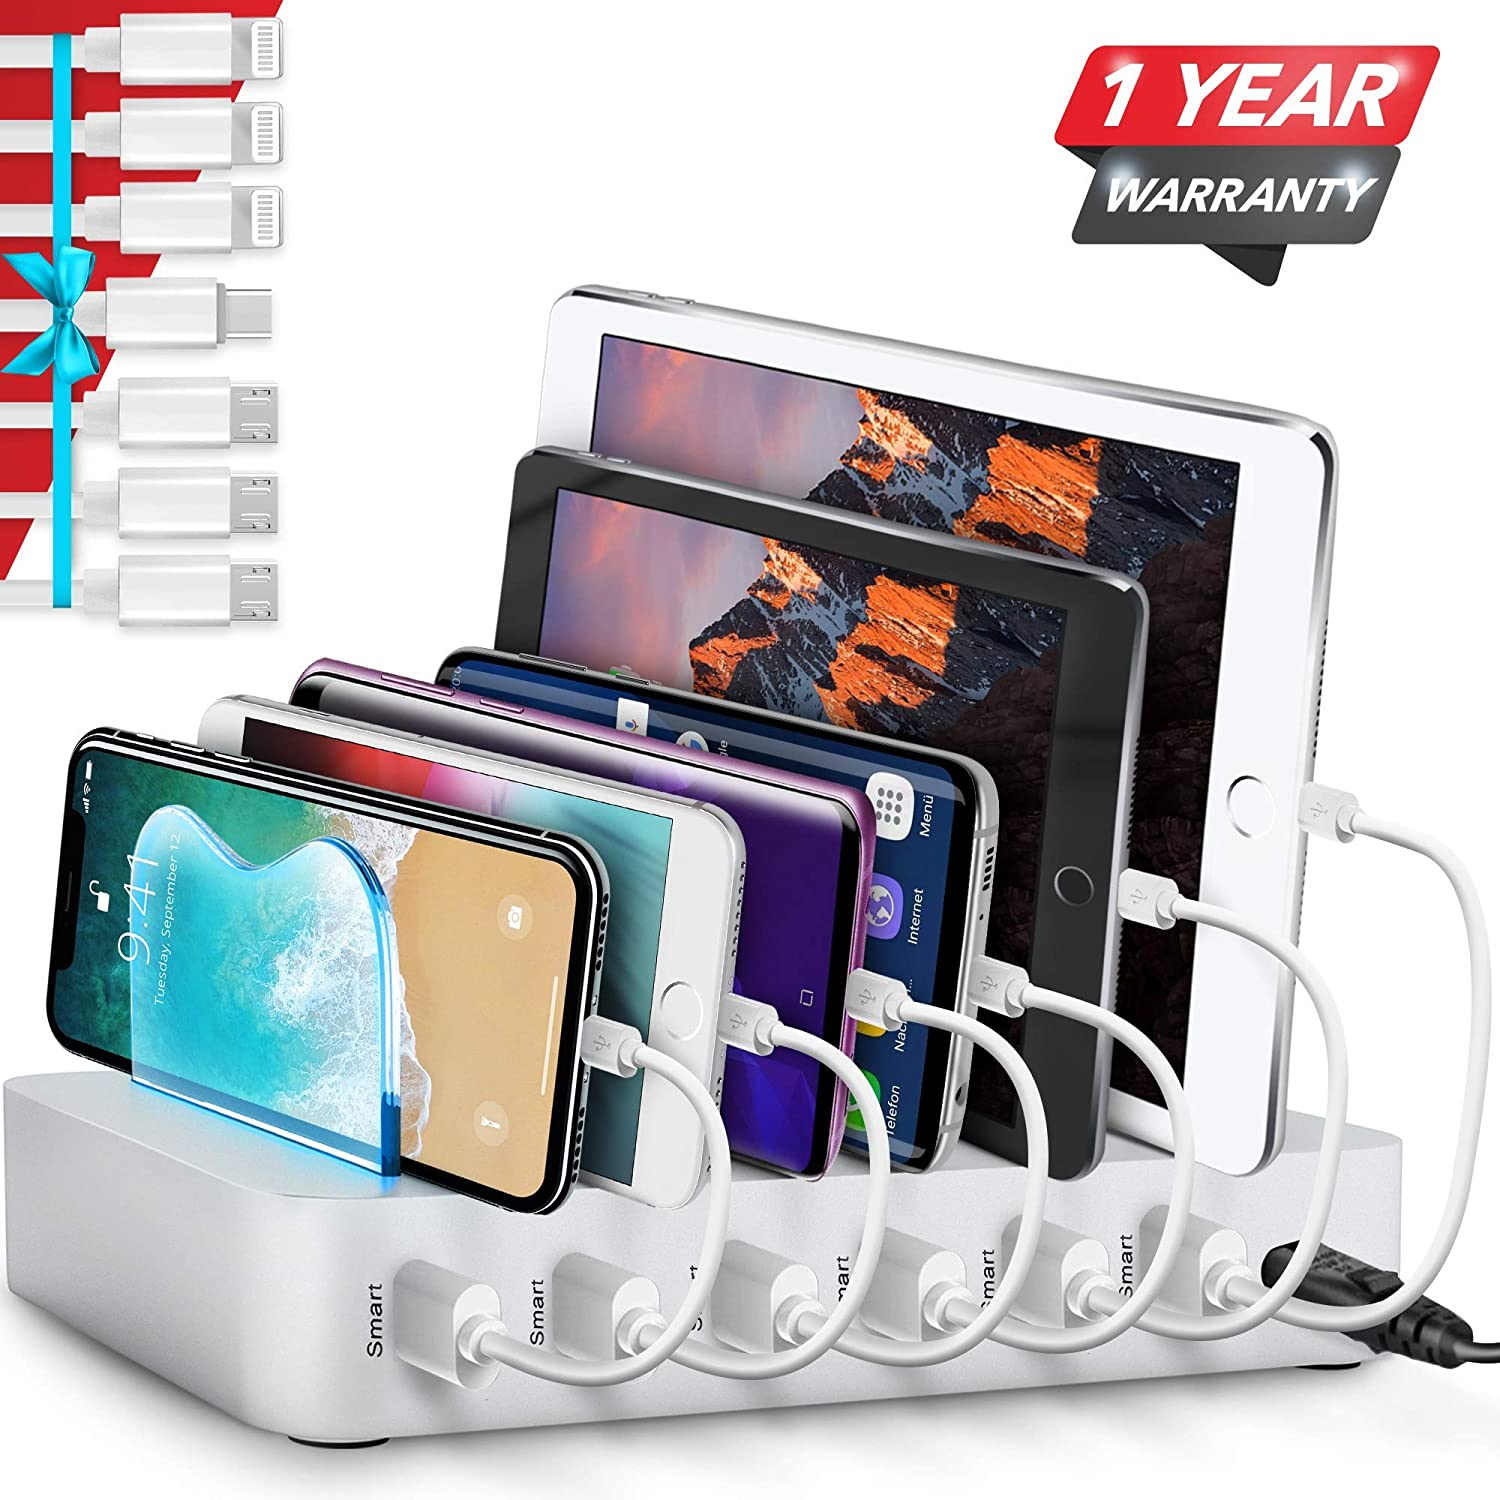 Do you have a friend that always loses their chargers? This organized charging system would be a perfect gift. For more organizing gifts, look here!